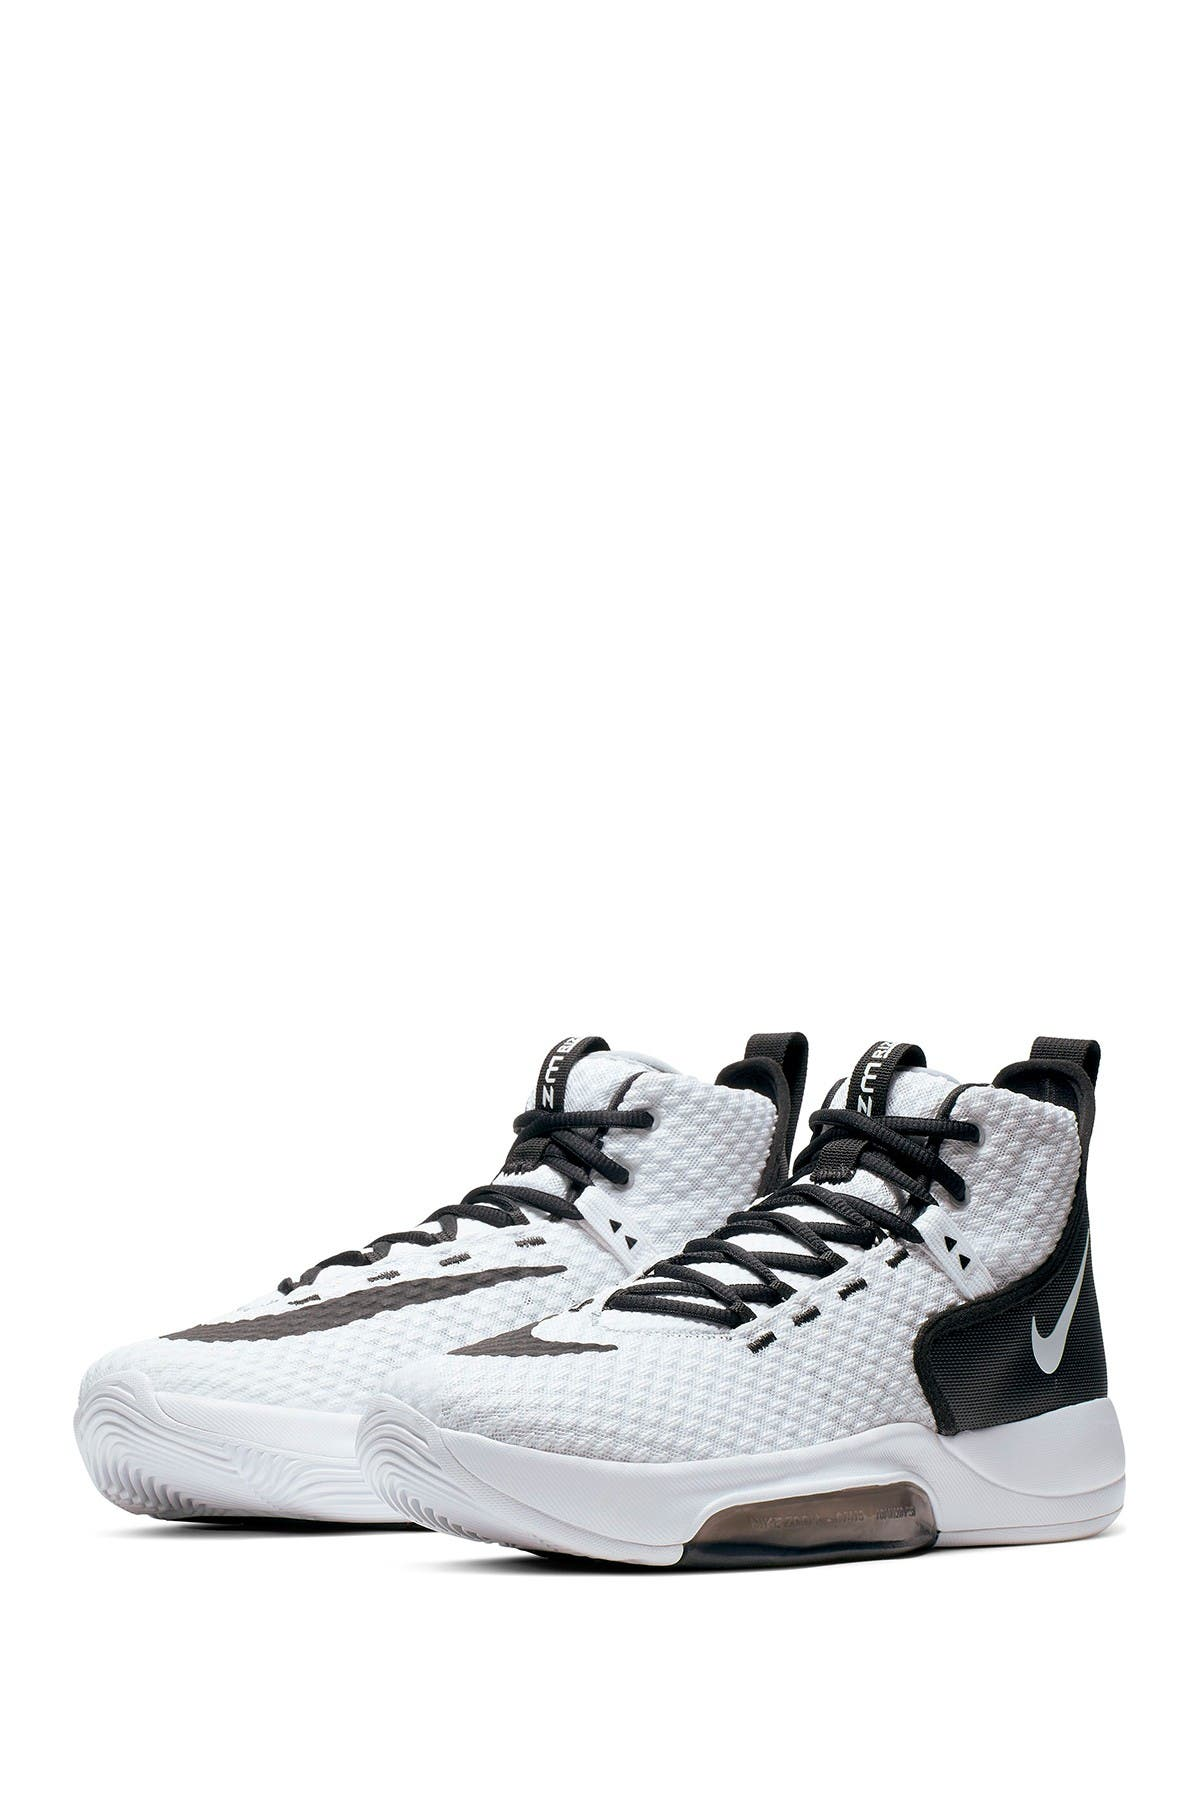 Image of Nike Zoom Rize Team Basketball Shoe